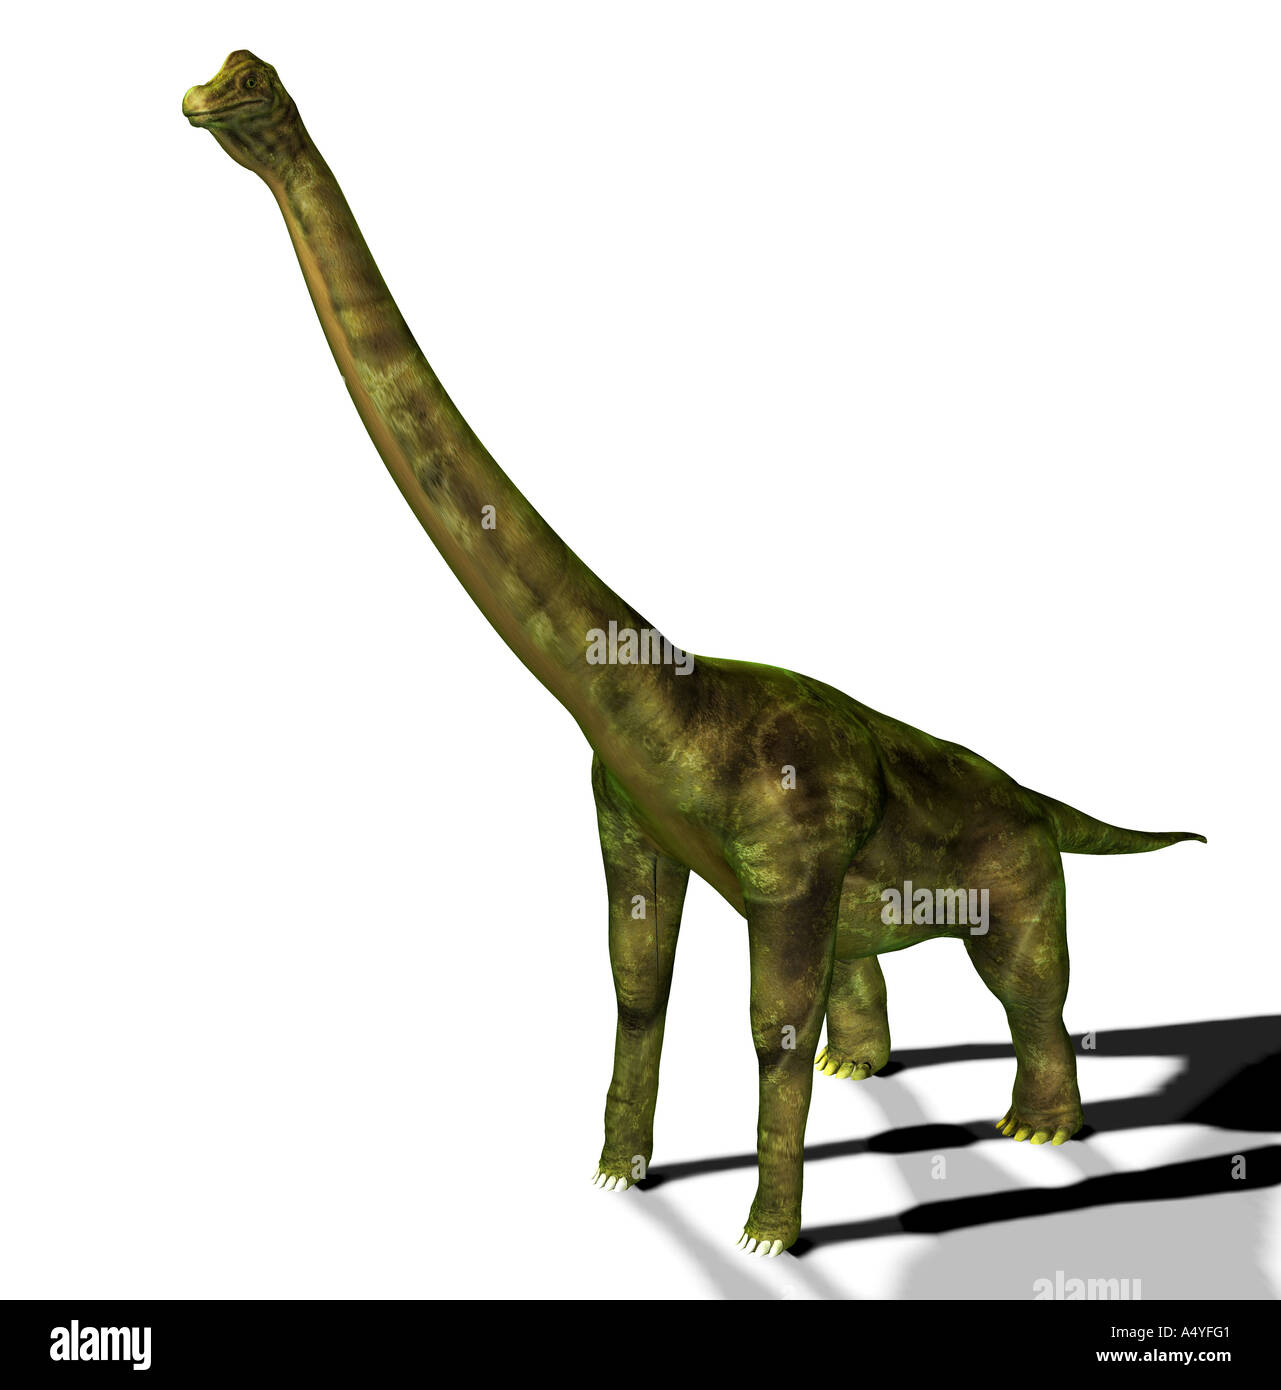 The brachiosaurus seemed also to arm lizard mentioned in the jurassic, had a weight of approx. 80 tons, a lengthStock Photo